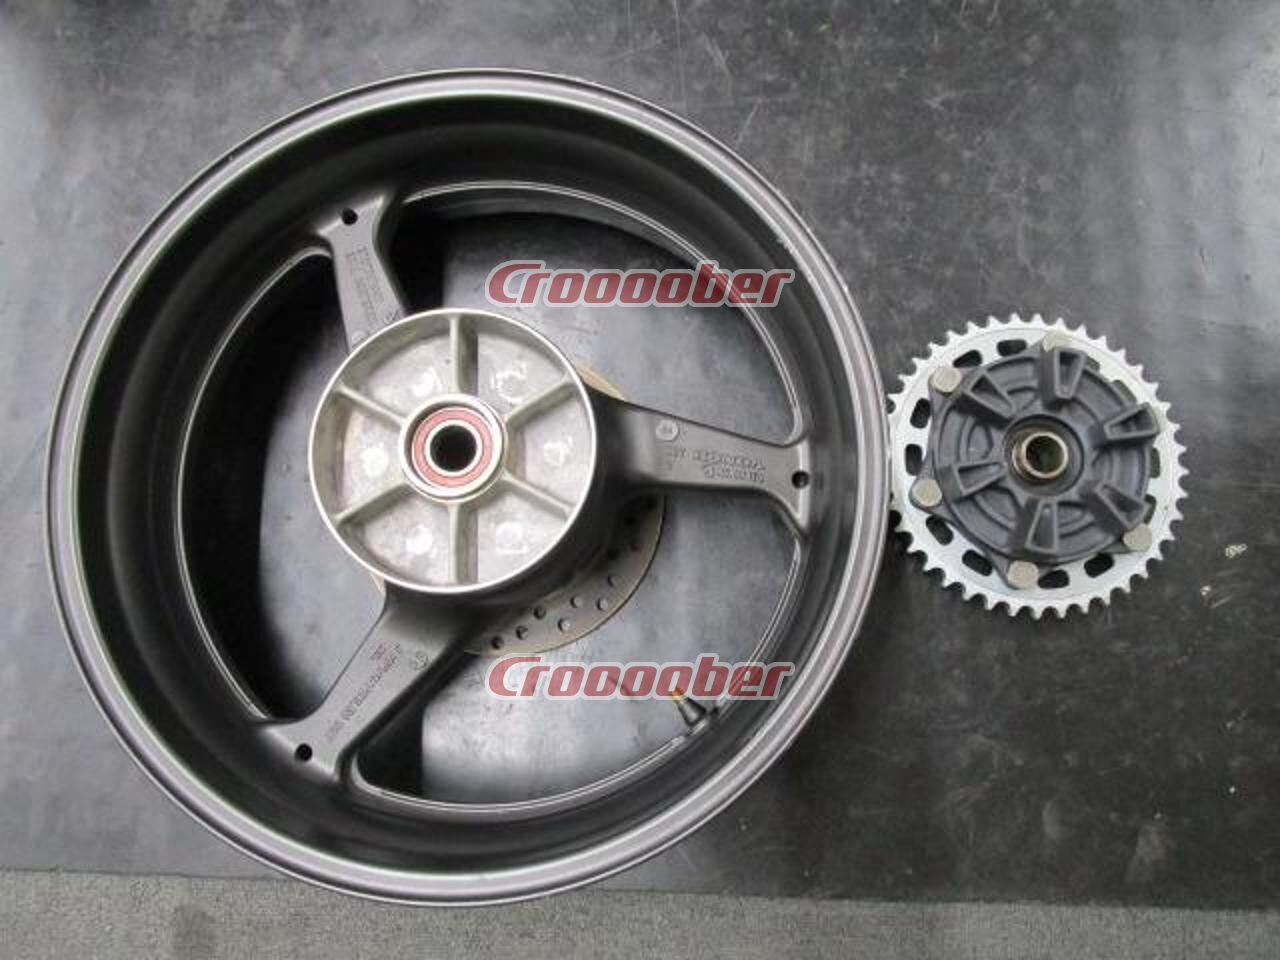 Honda Genuine Rear Wheel Cbr600rr 2005 Removal Rims For Sale Croooober